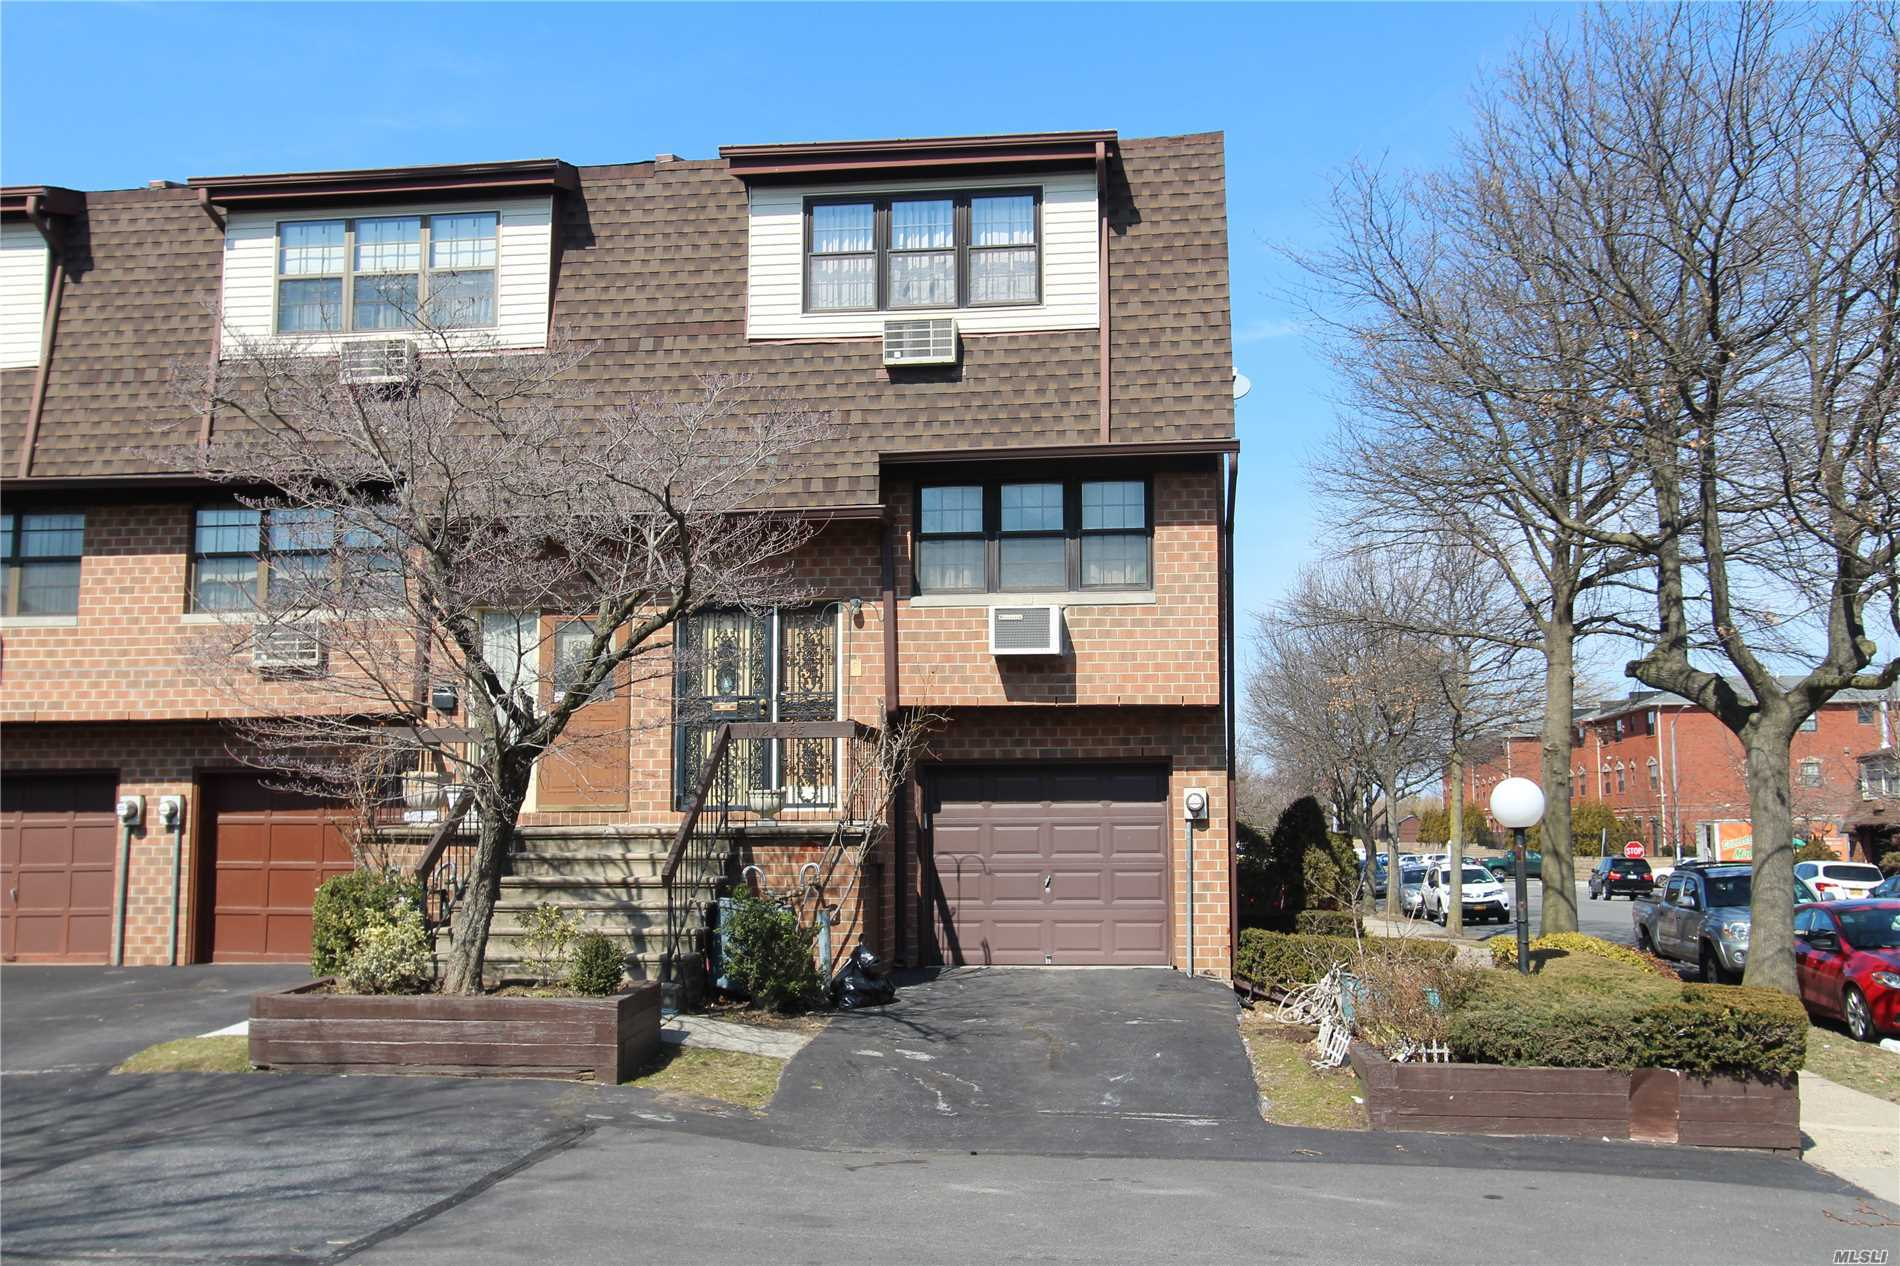 Riverview Triplex Condominium 2, 010 Sq.Ft. 3 Bedrooms, 2.5 Baths, Living Room, Dining Room, Kitchen, Den / 4th Bedroom, And Garage. Sliders To Private Backyard. New Windows. Granite And Hardwood Floors. Only $263 / Mo. Common Charges!!!